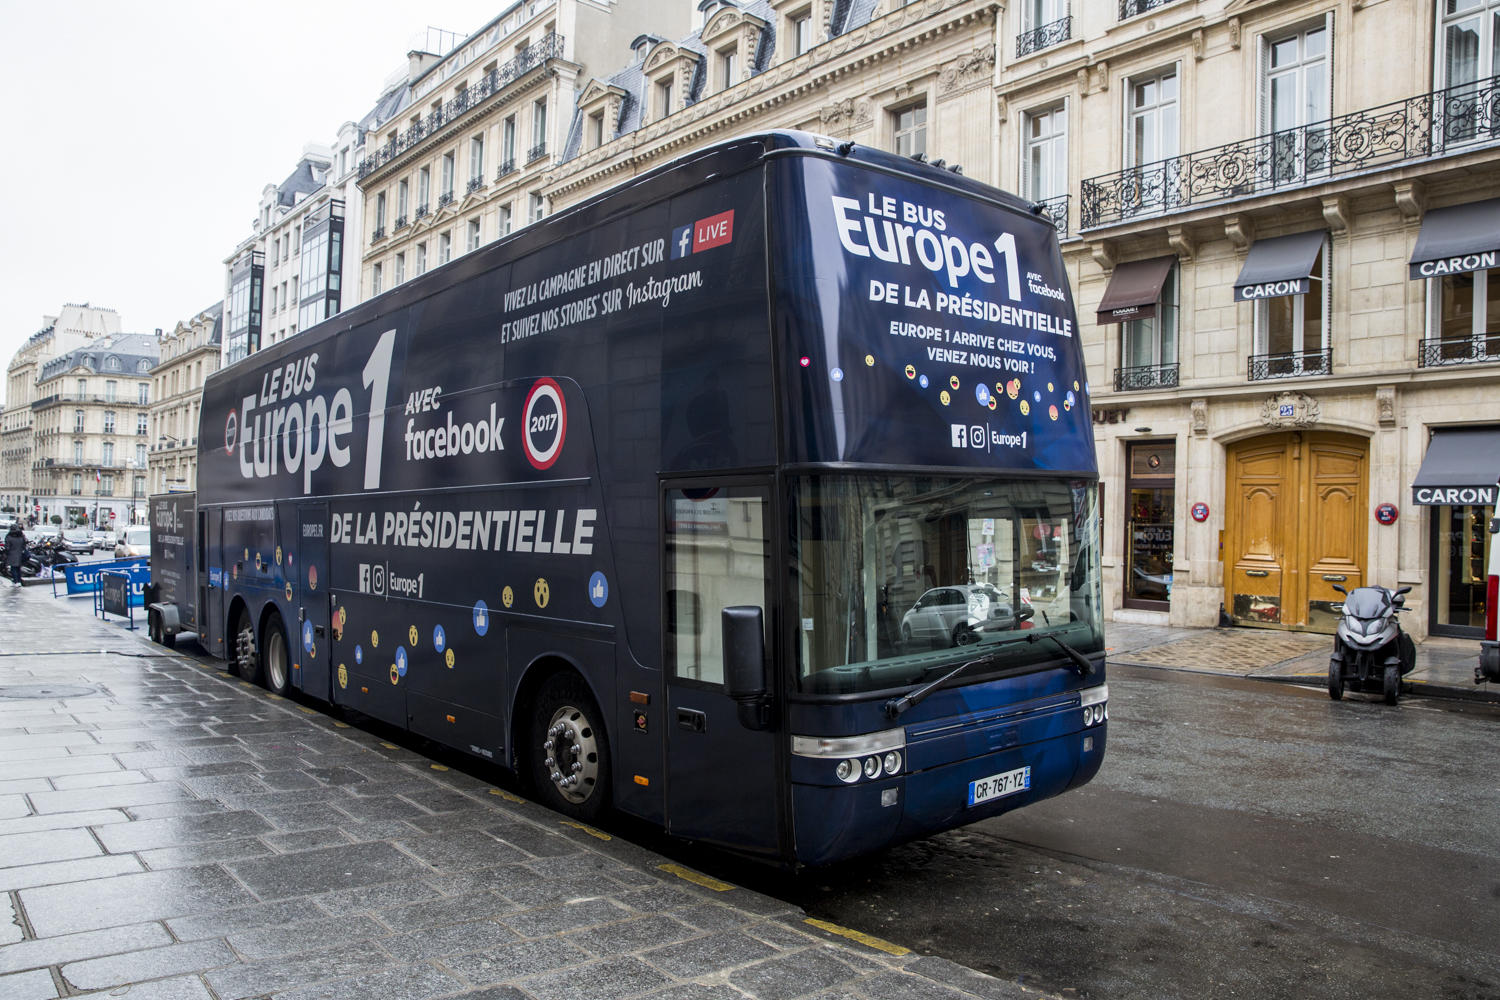 Le Bus Europe 1 sillonne la France